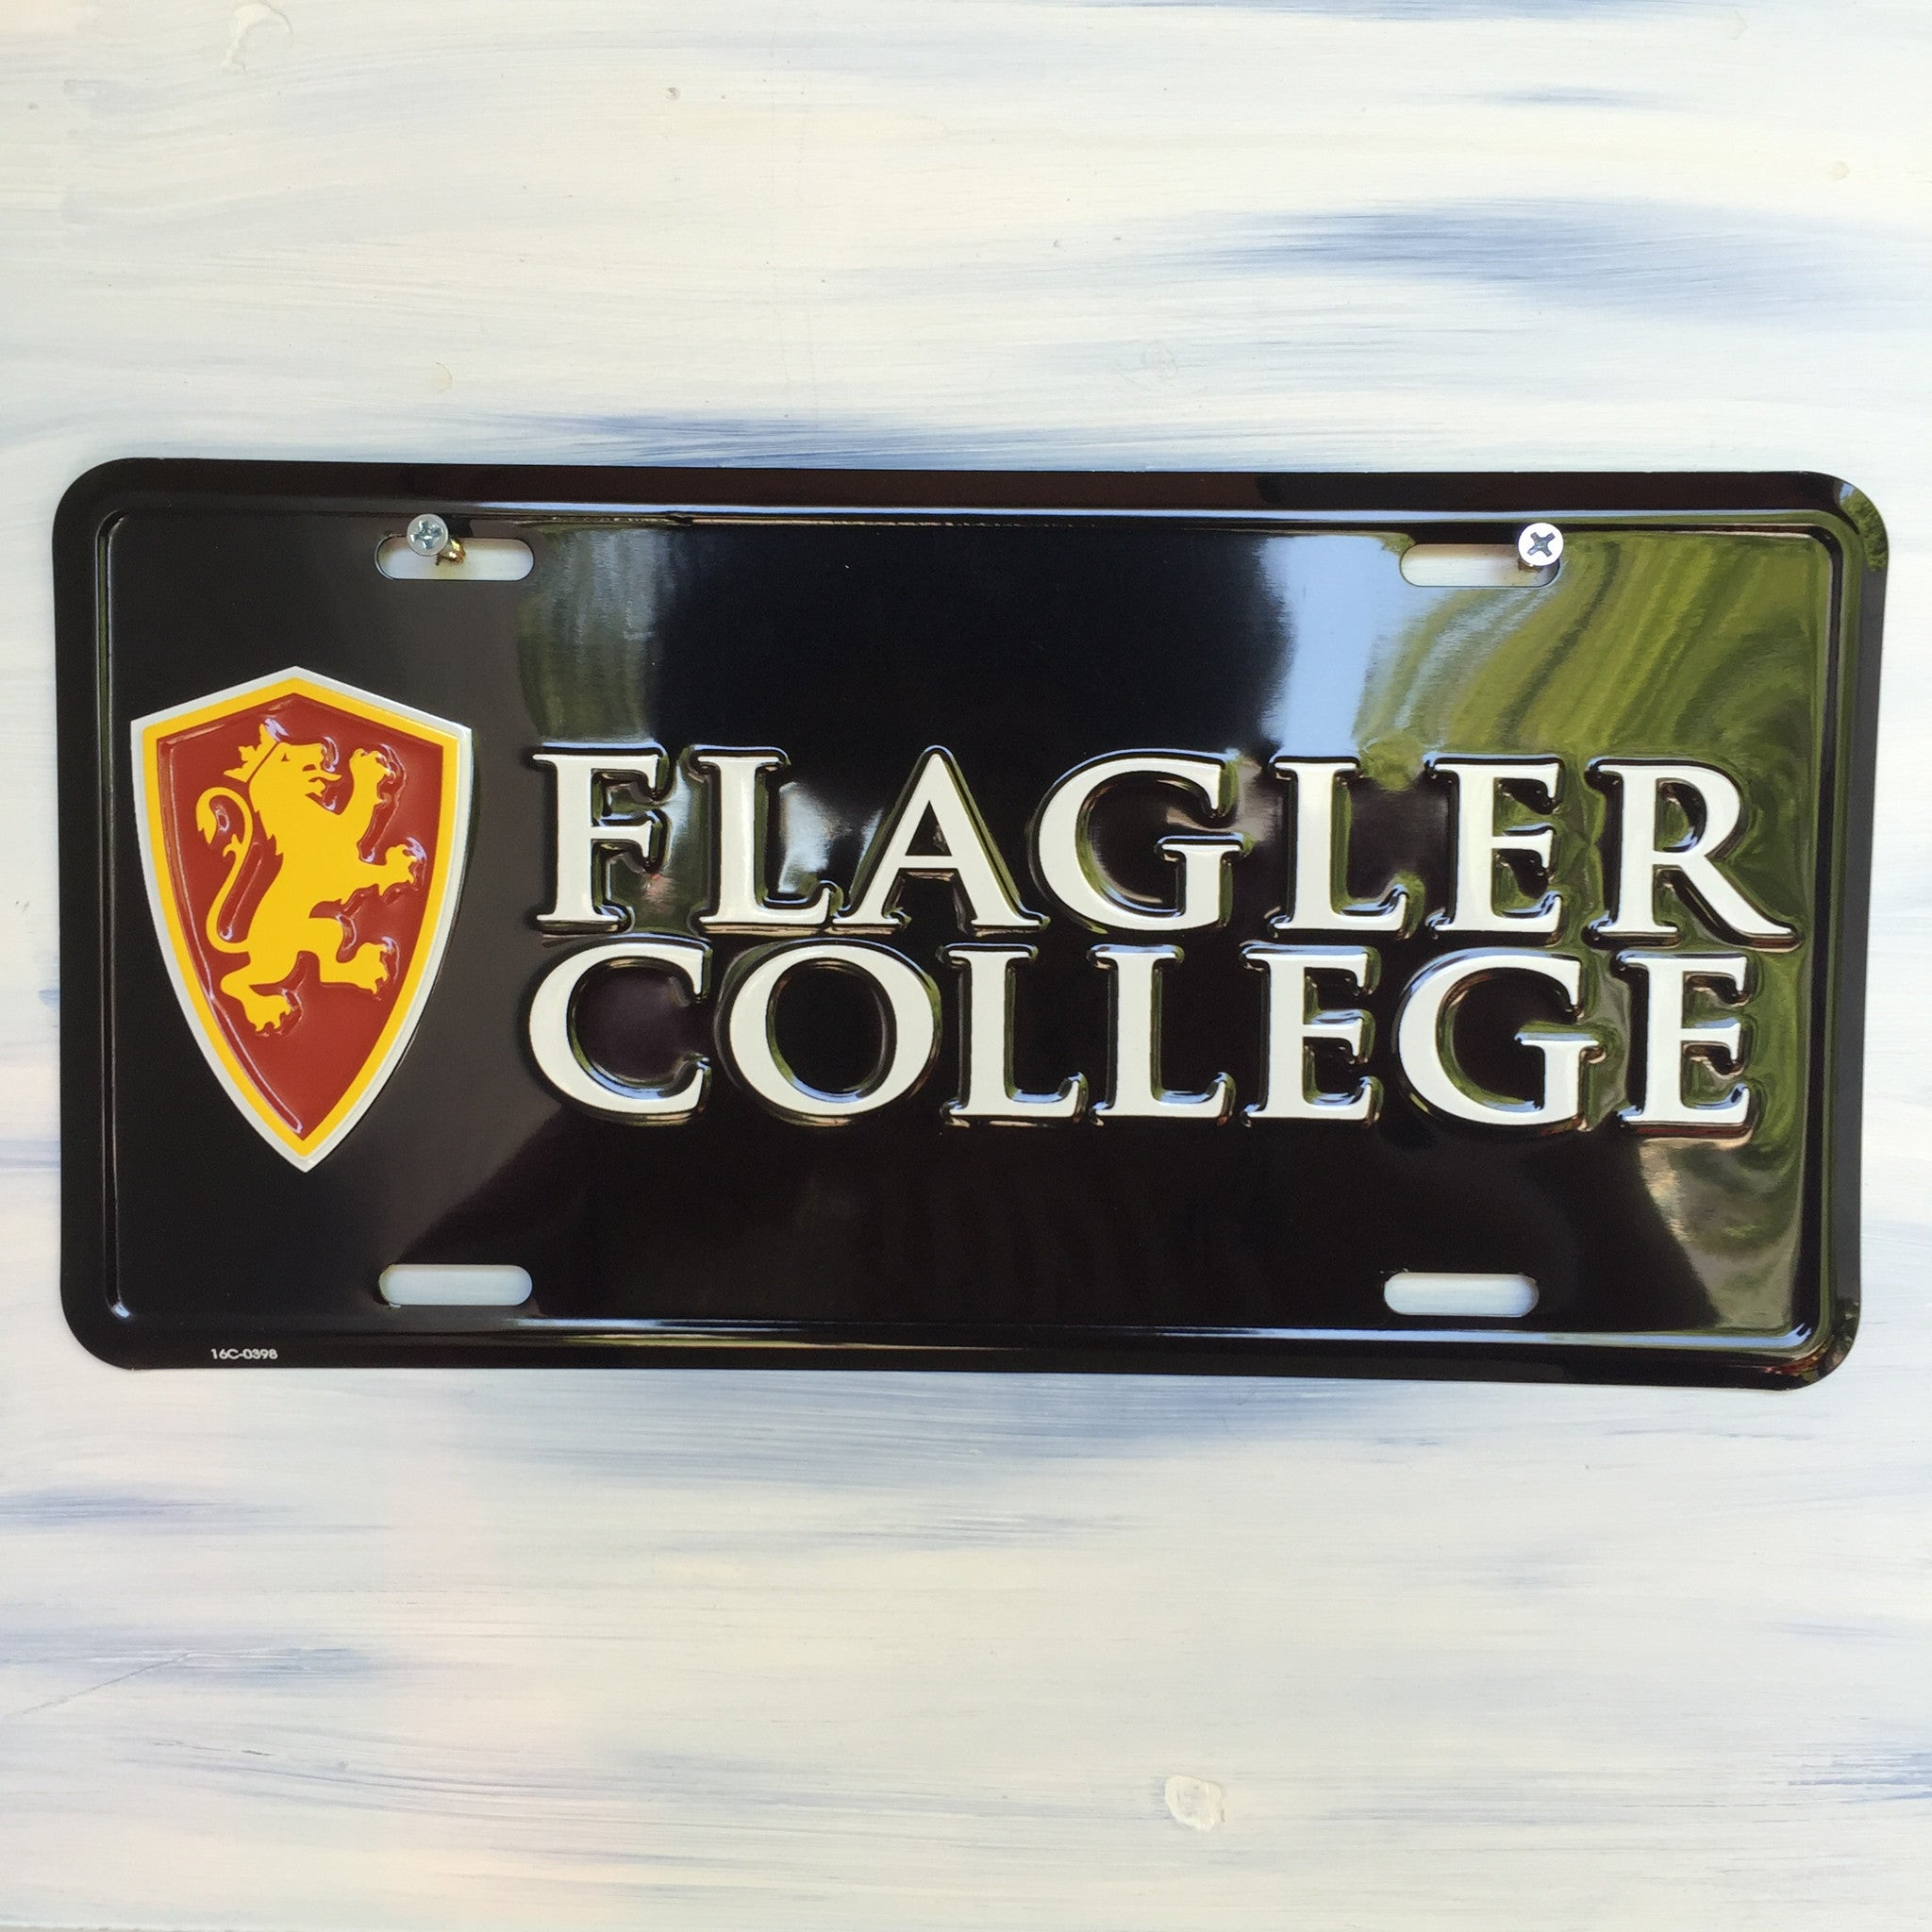 black front license plate with gold and red lion shield and Flagler College in white text